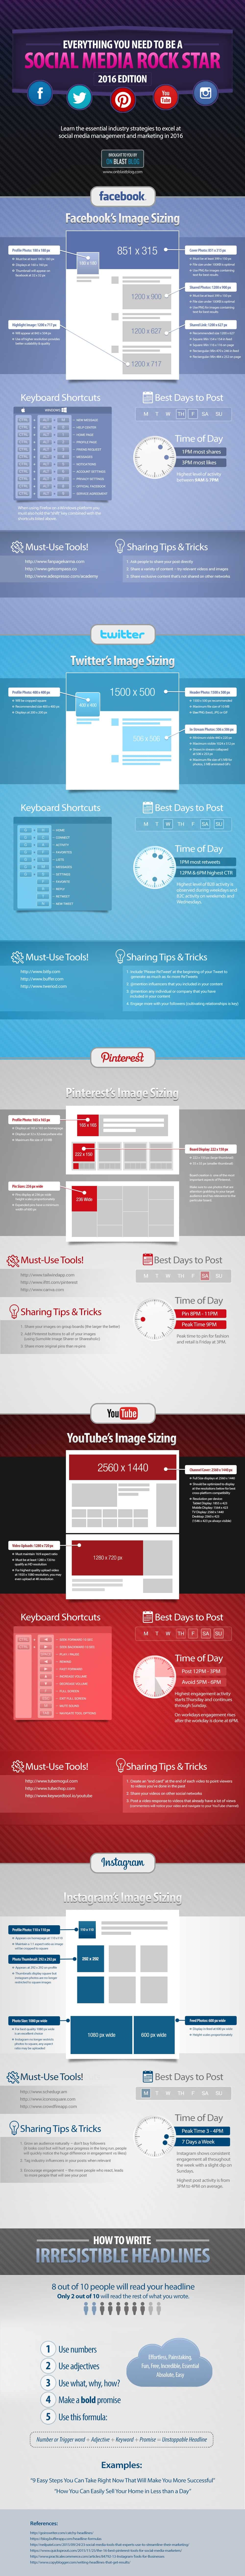 How Your Business Can Leverage Social Media Marketing (Infographic)